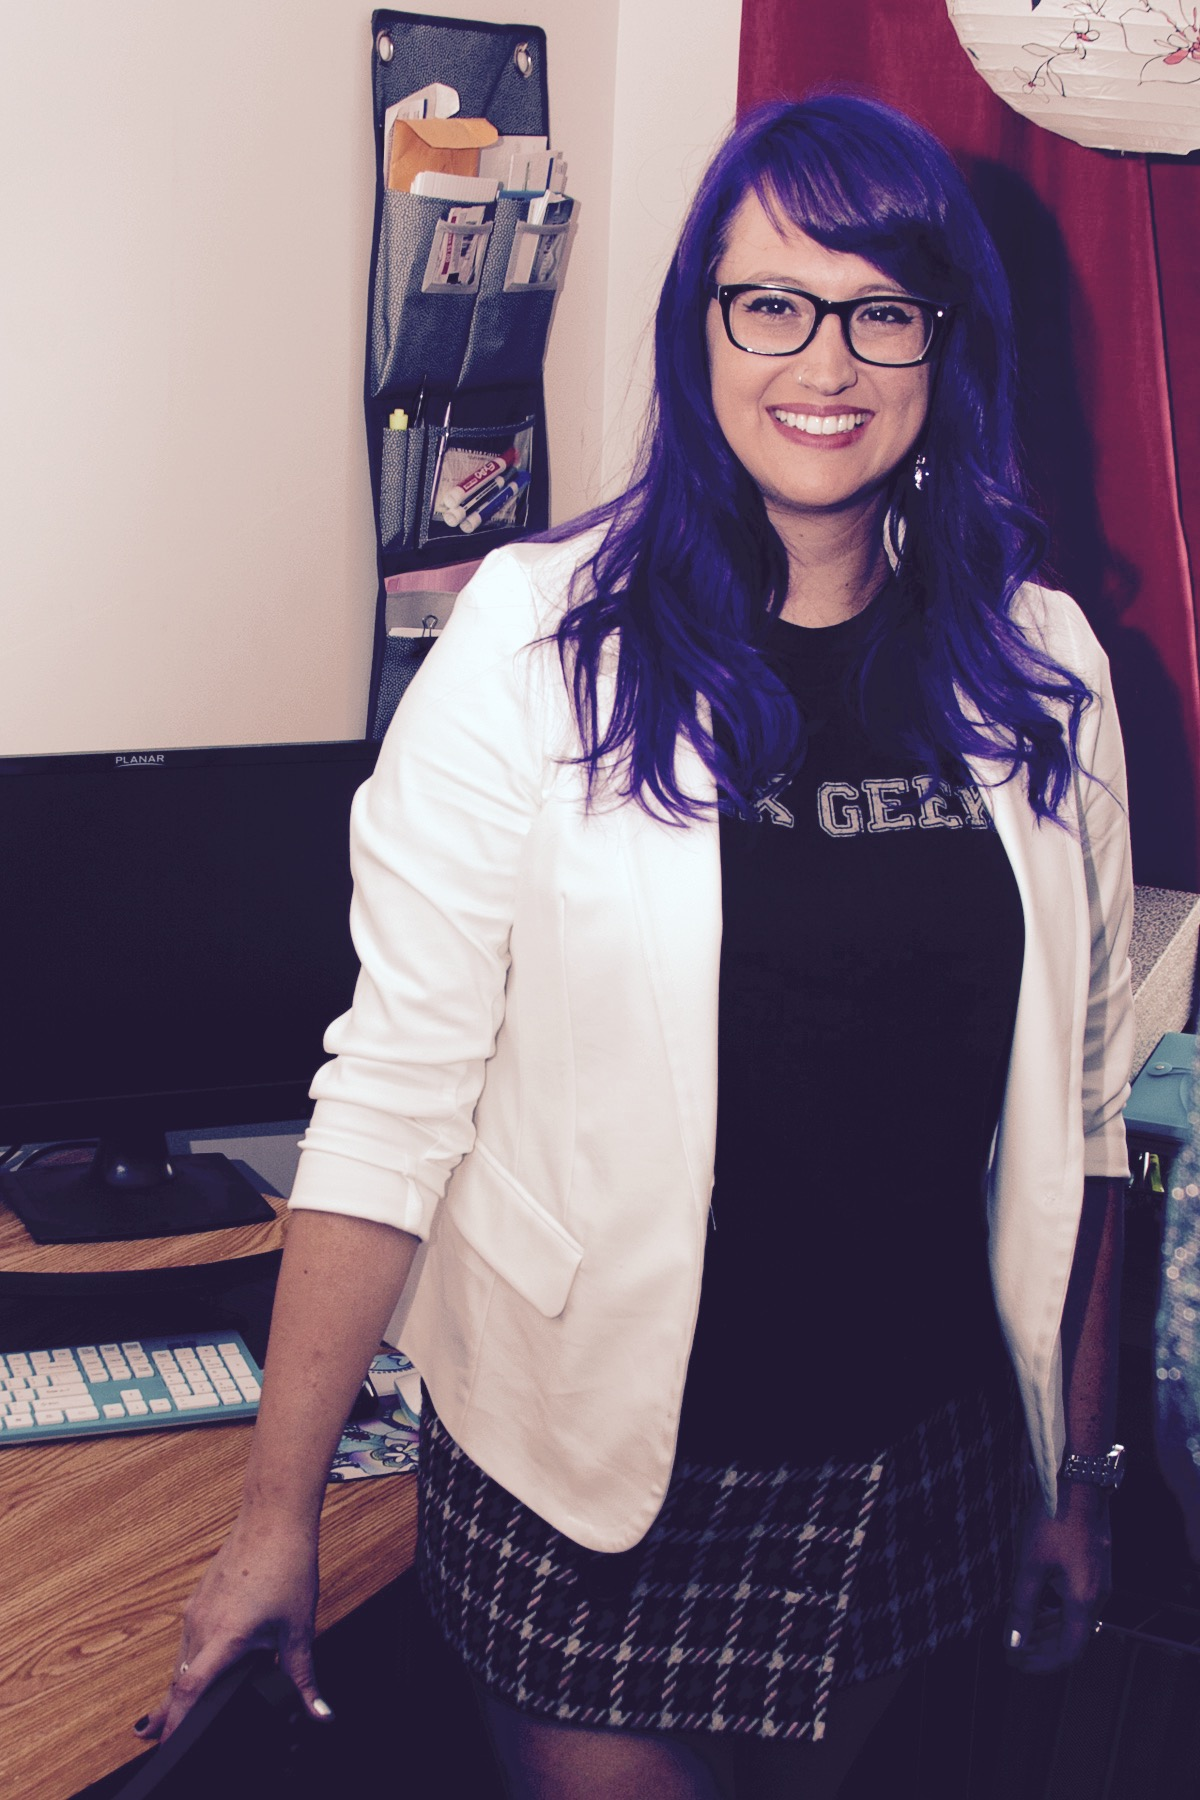 Angel with glasses, purple hair, and a white jacket over a black shirt.